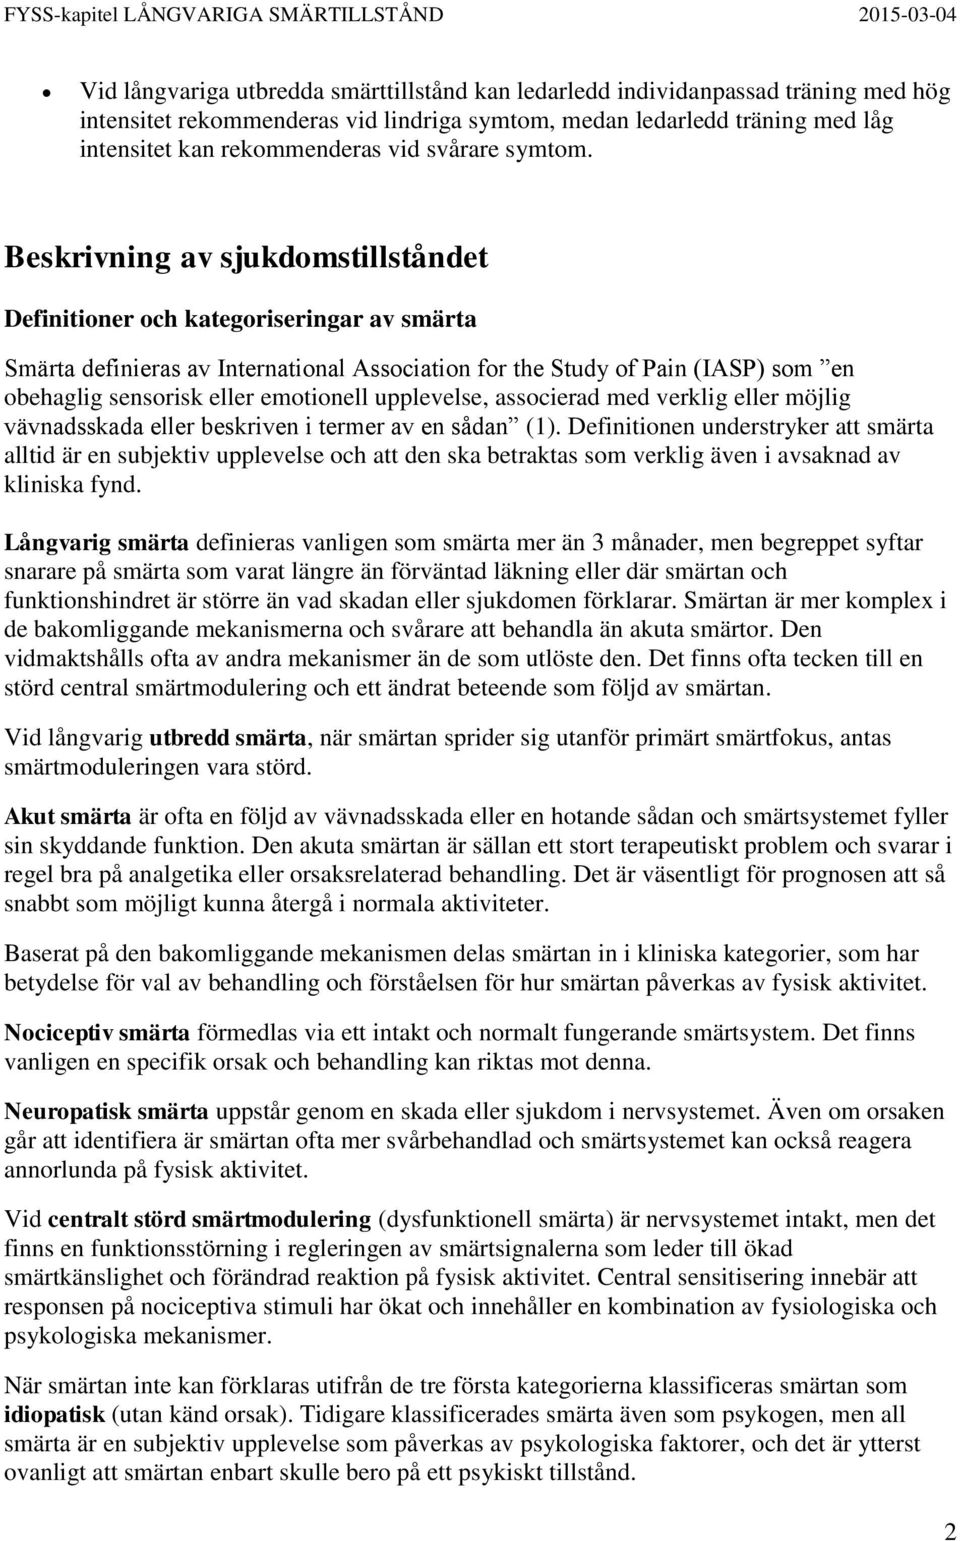 Beskrivning av sjukdomstillståndet Definitioner och kategoriseringar av smärta Smärta definieras av International Association for the Study of Pain (IASP) som en obehaglig sensorisk eller emotionell